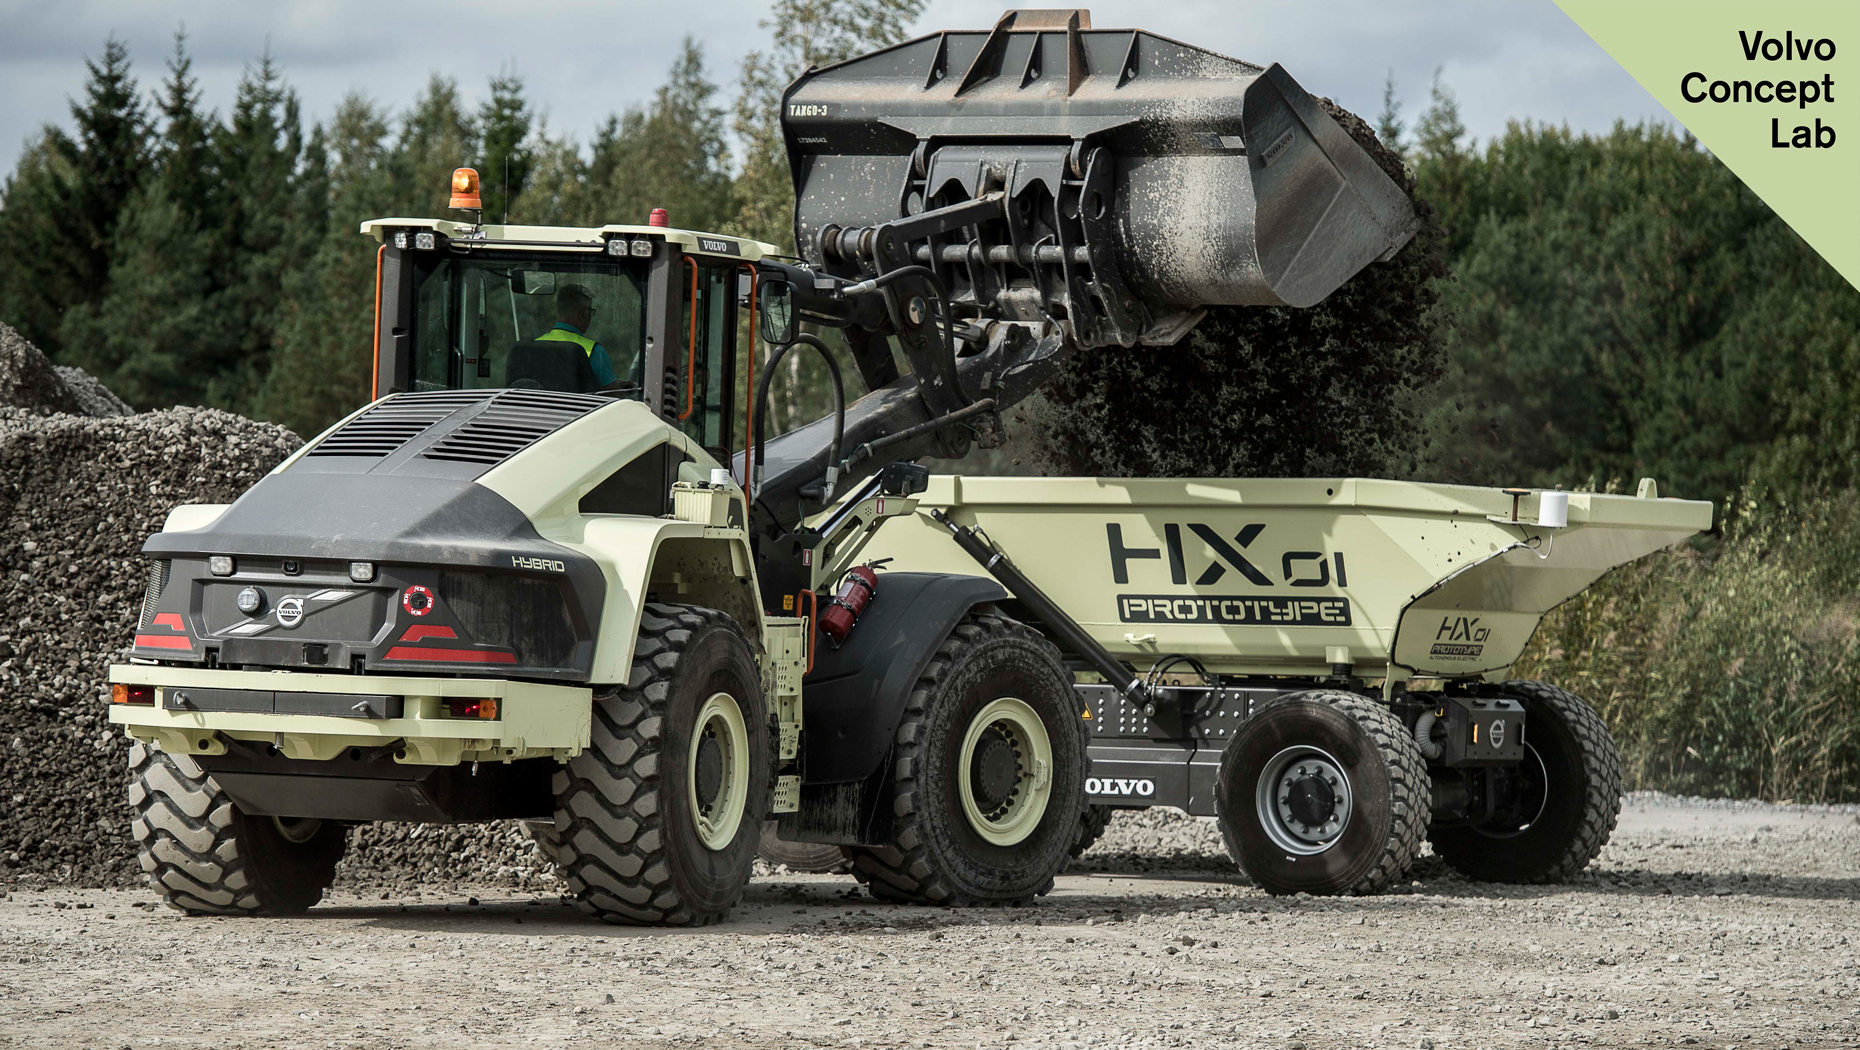 Could this 'driverless' dumper have a role in farming